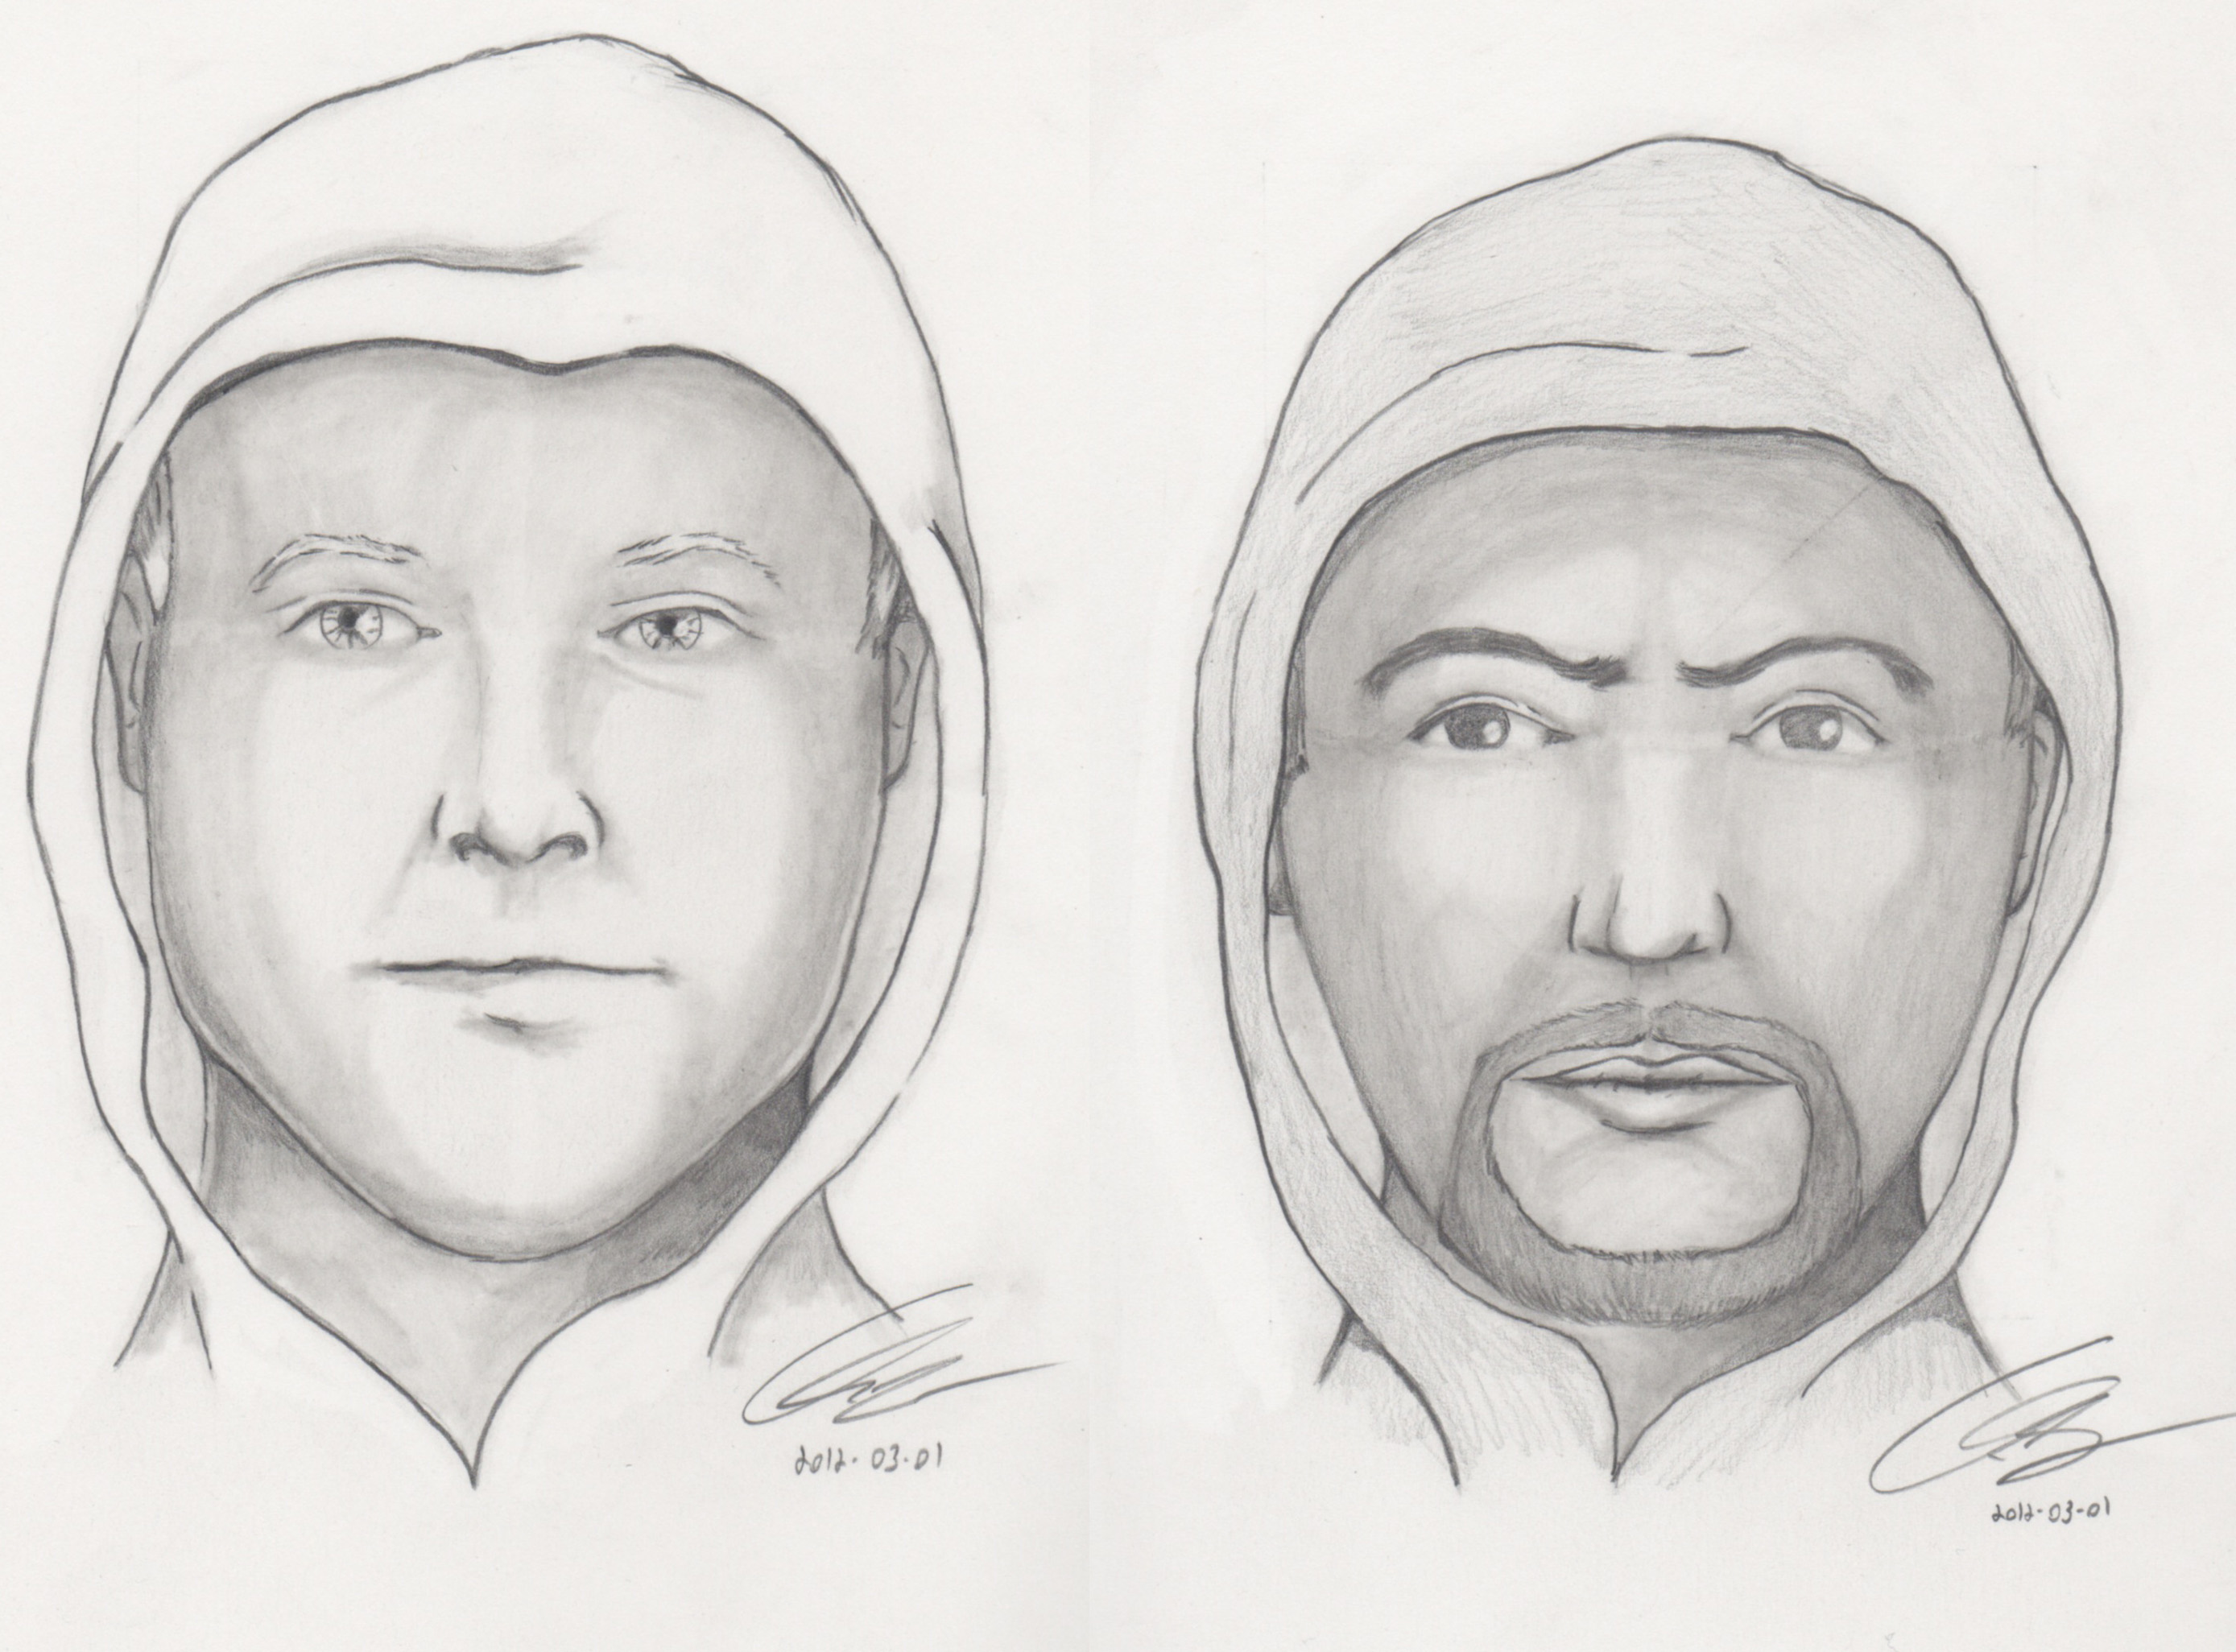 drawings of the suspects involved